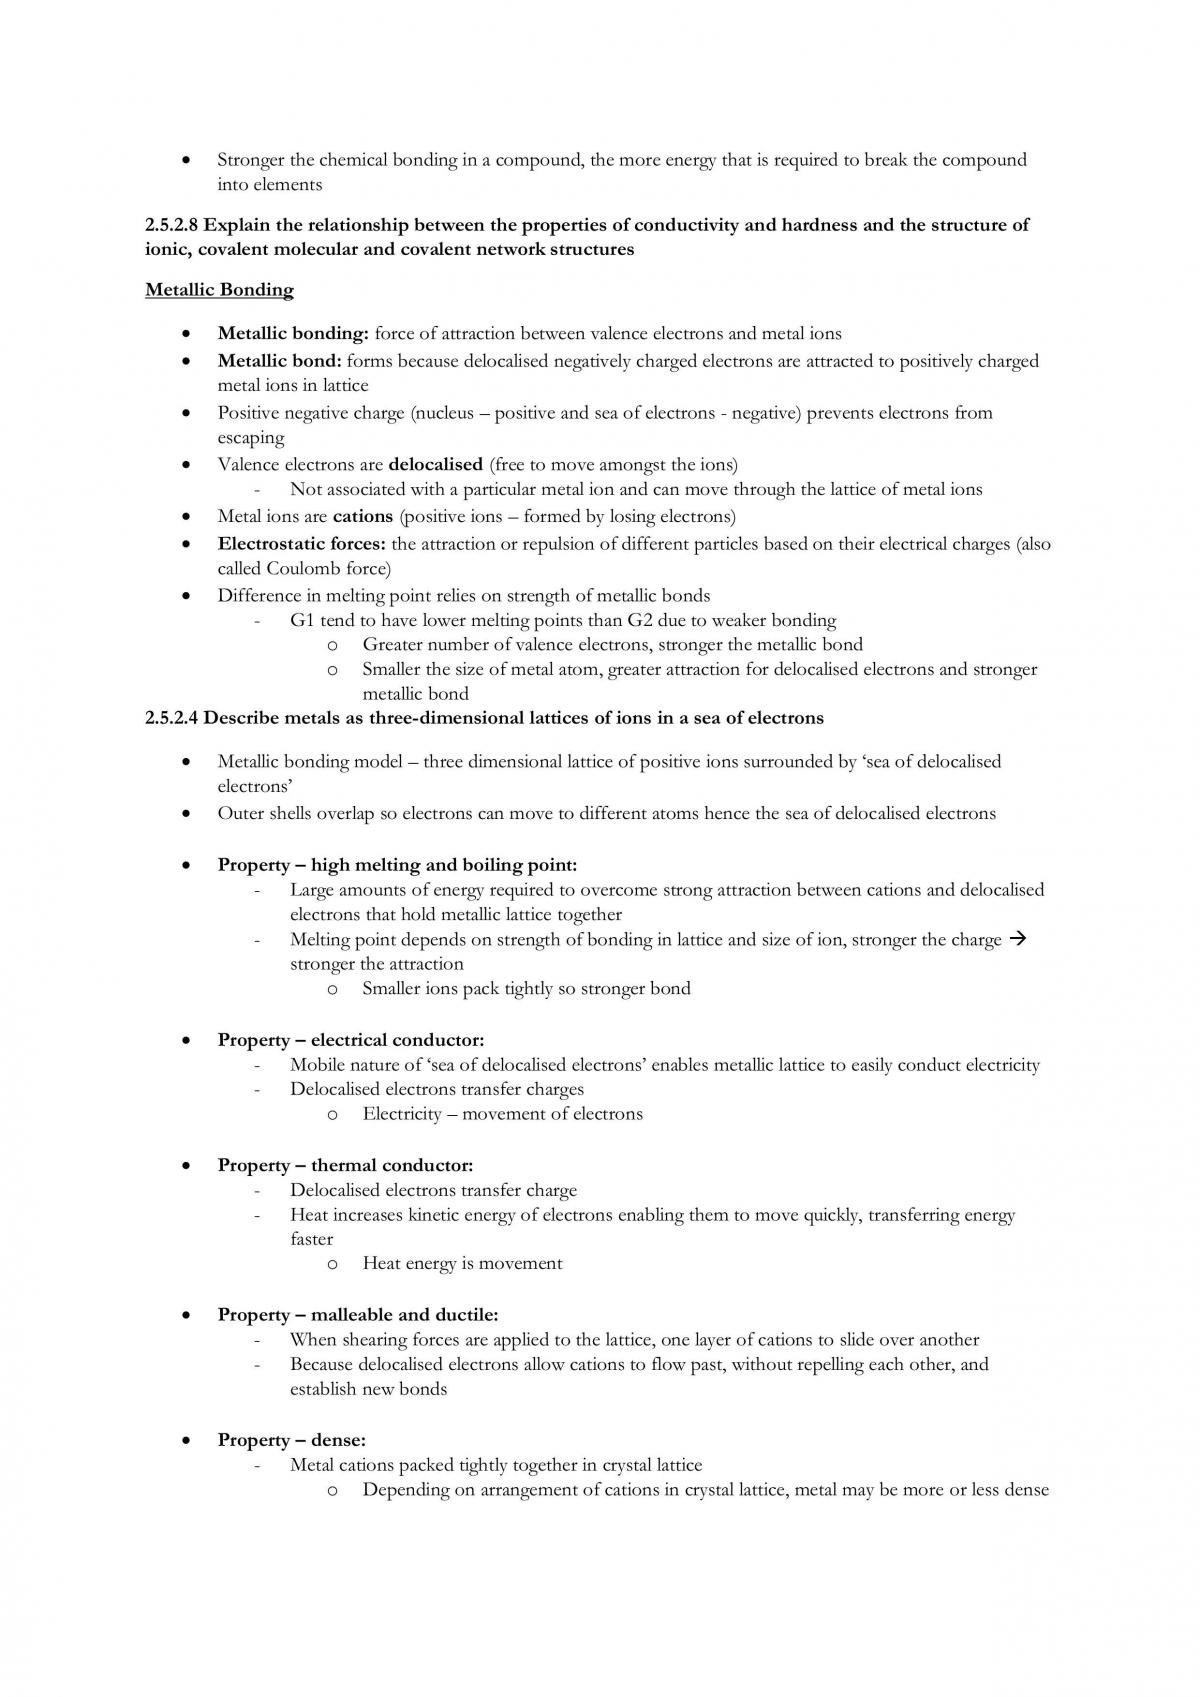 The Chemical Earth Notes - Page 15